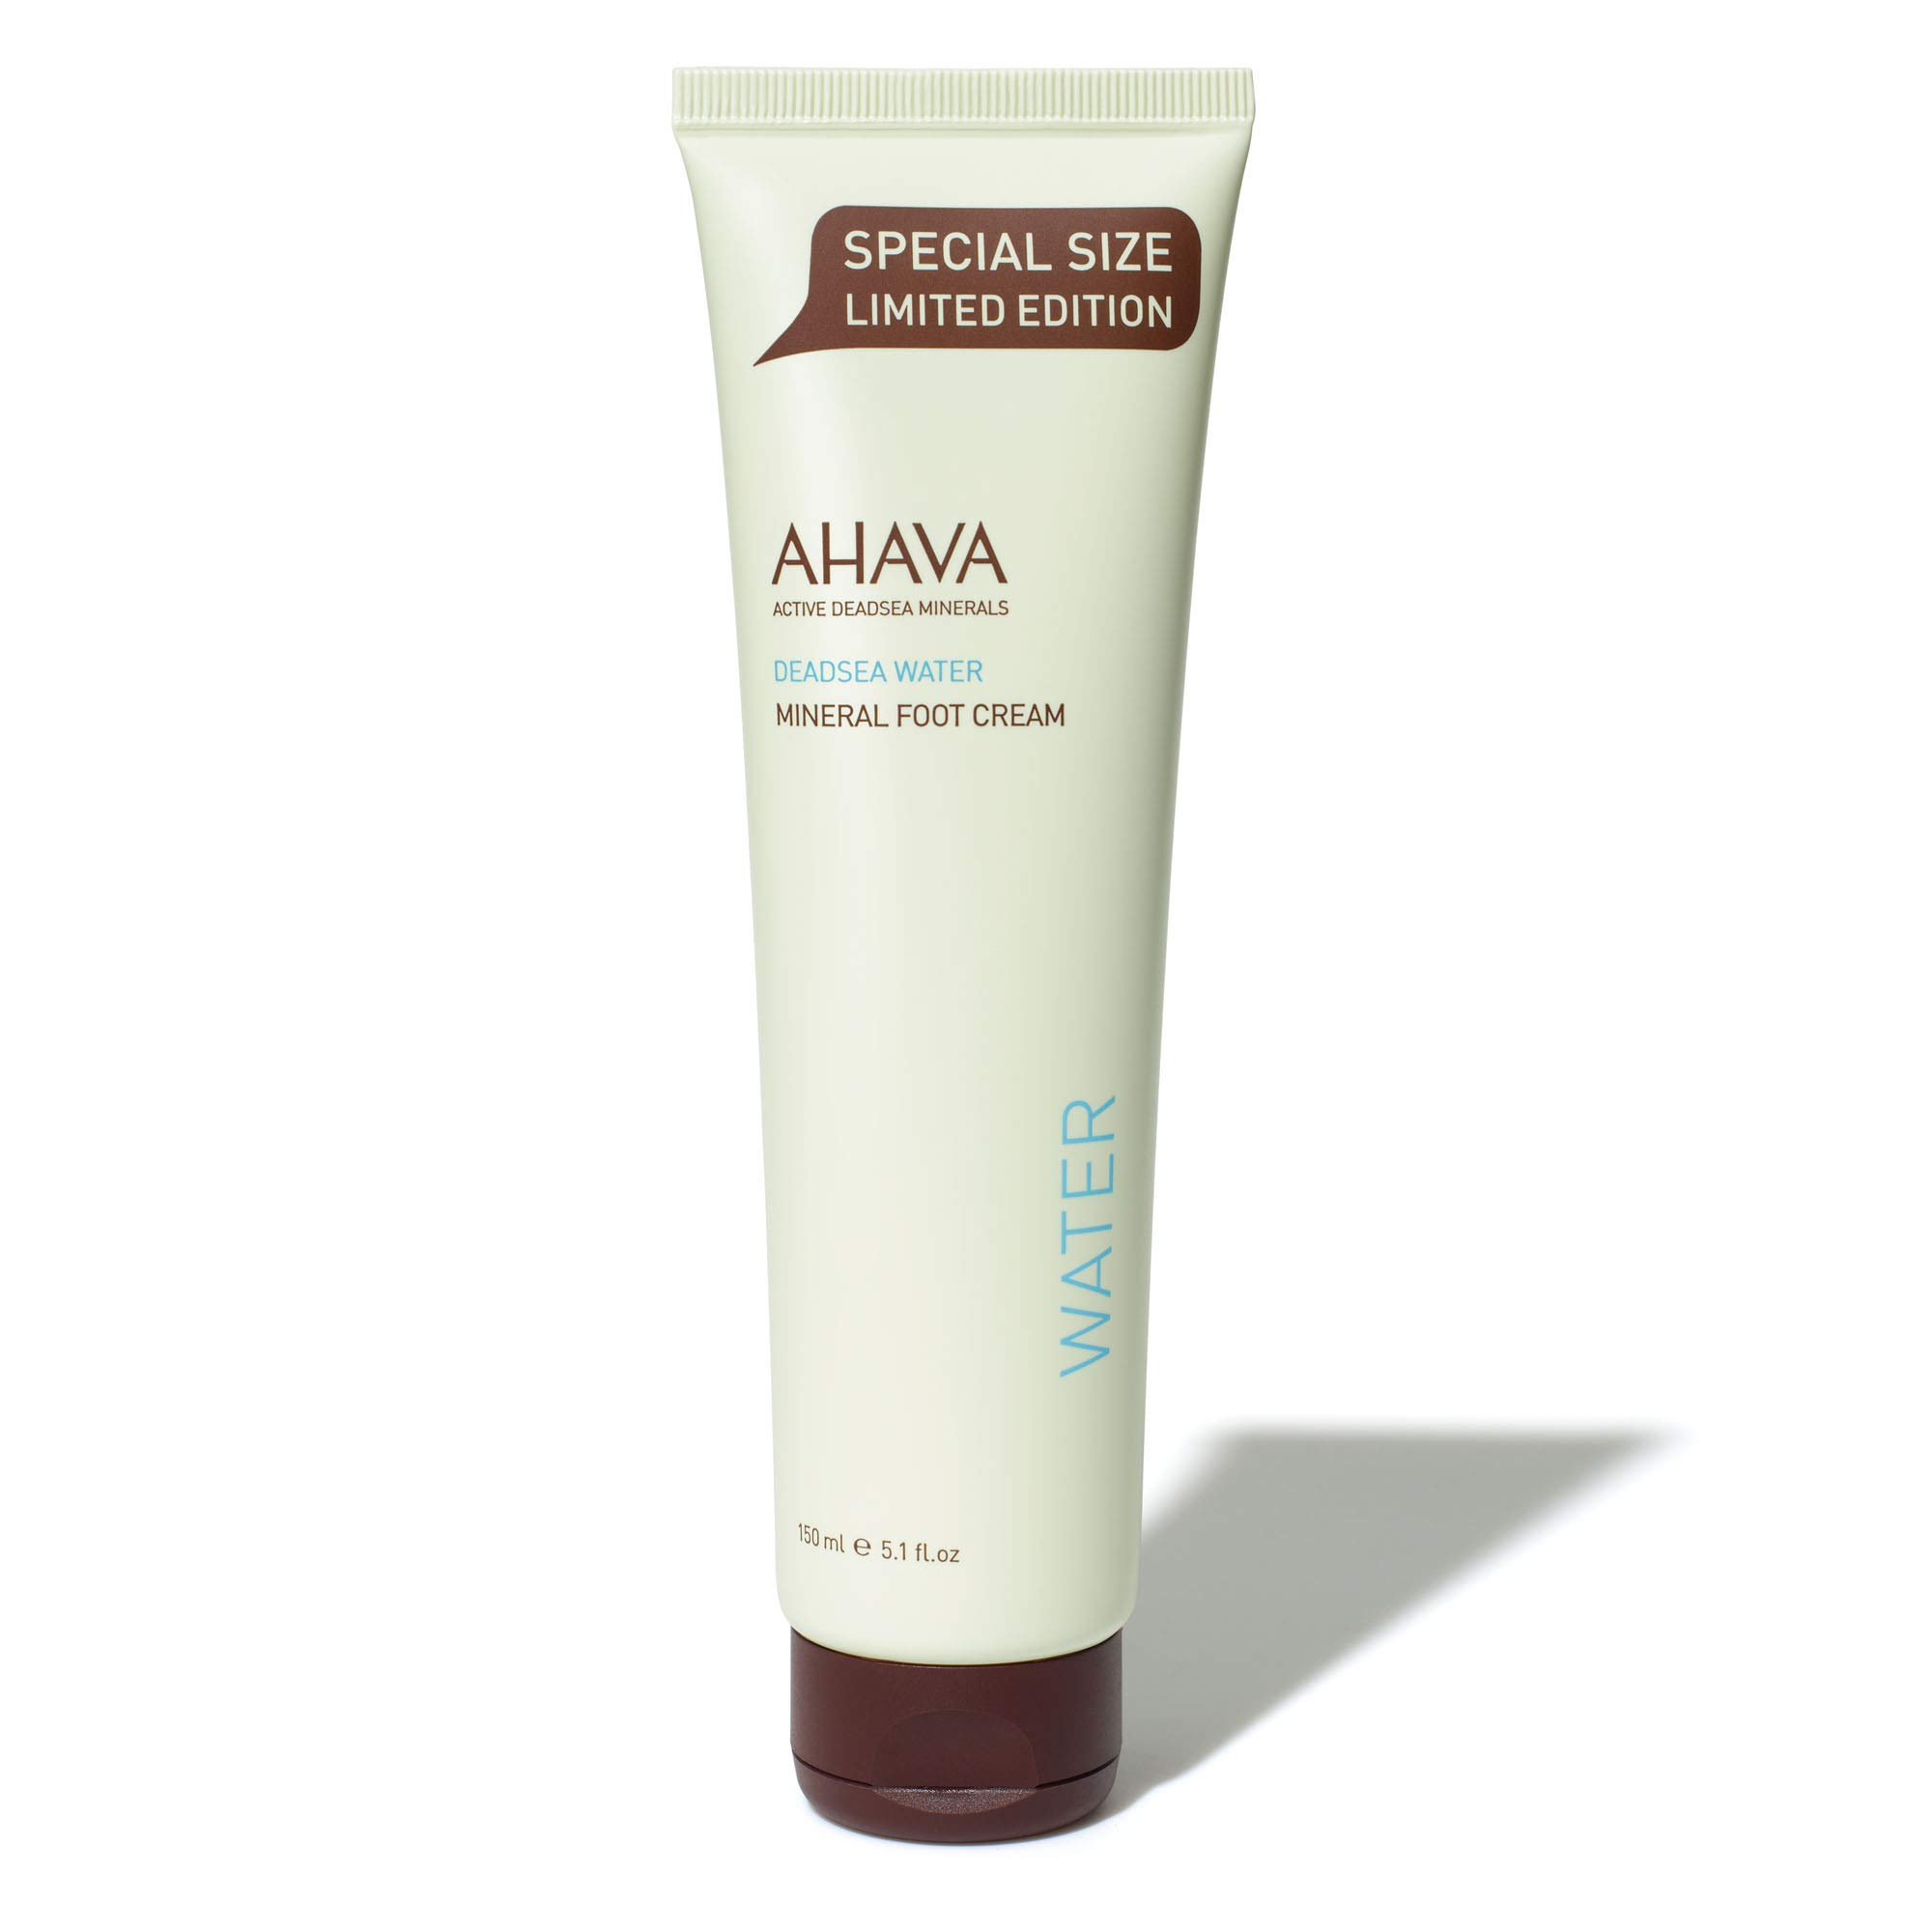 AHAVA Mineral Foot Cream, 5.1 Fl Oz